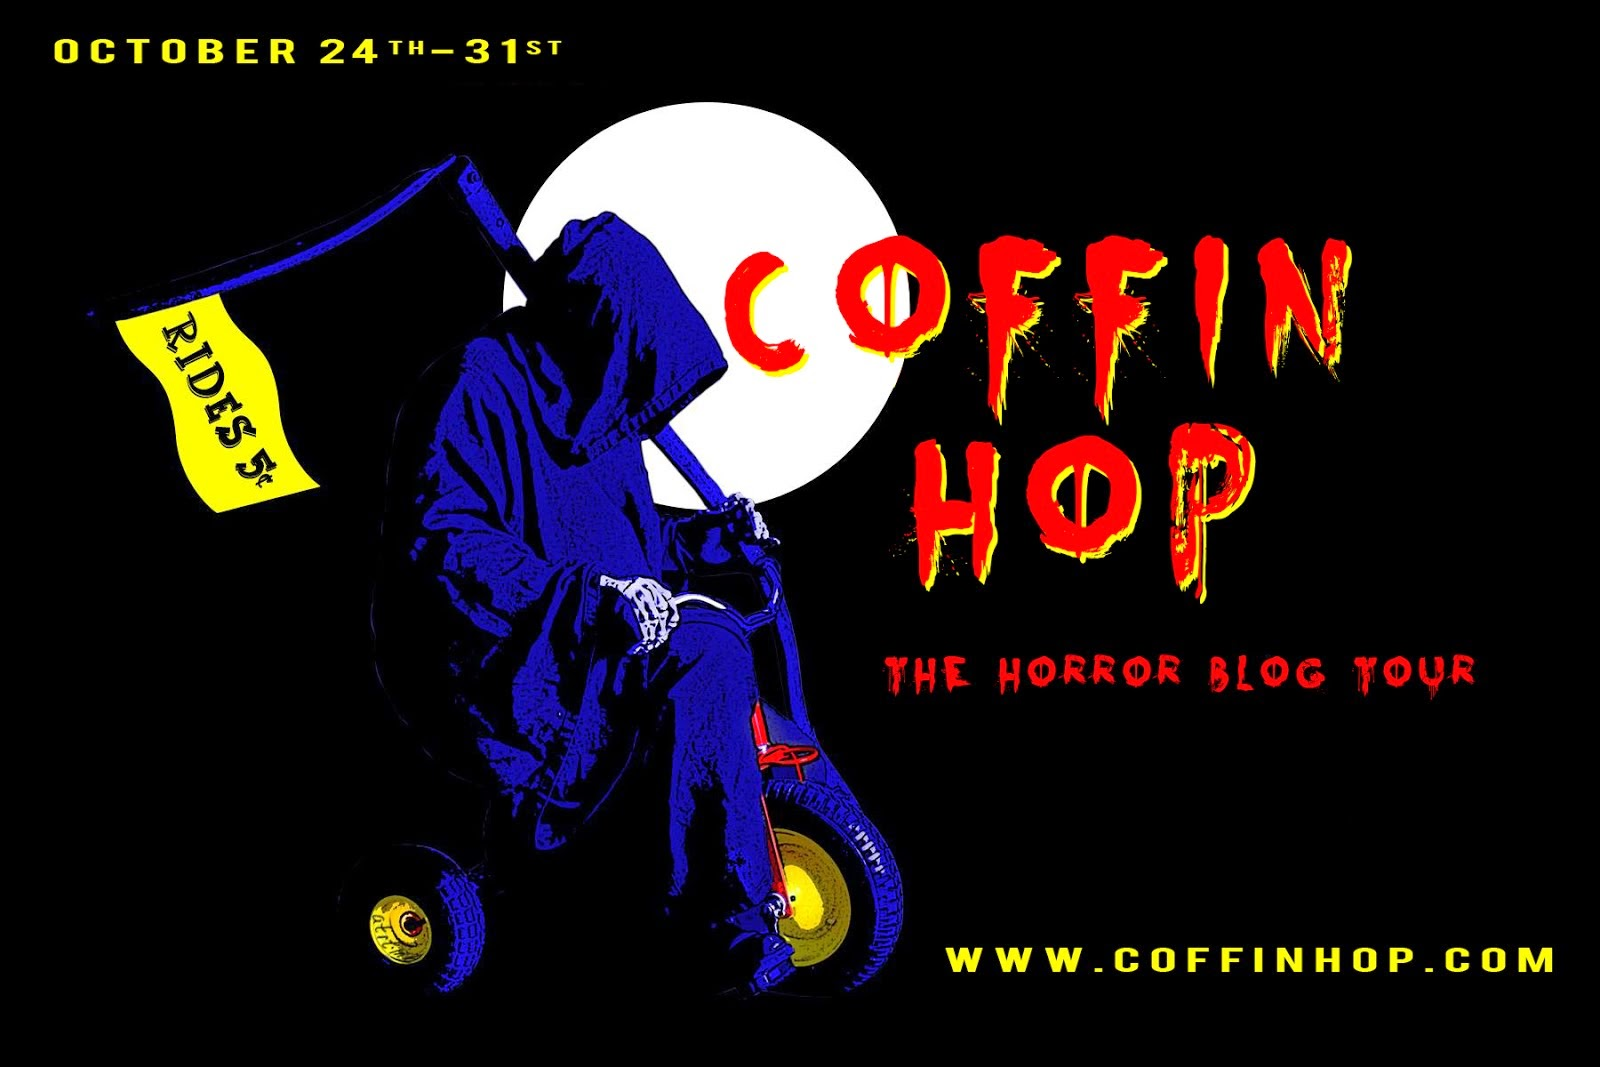 COFFIN HOP 2014